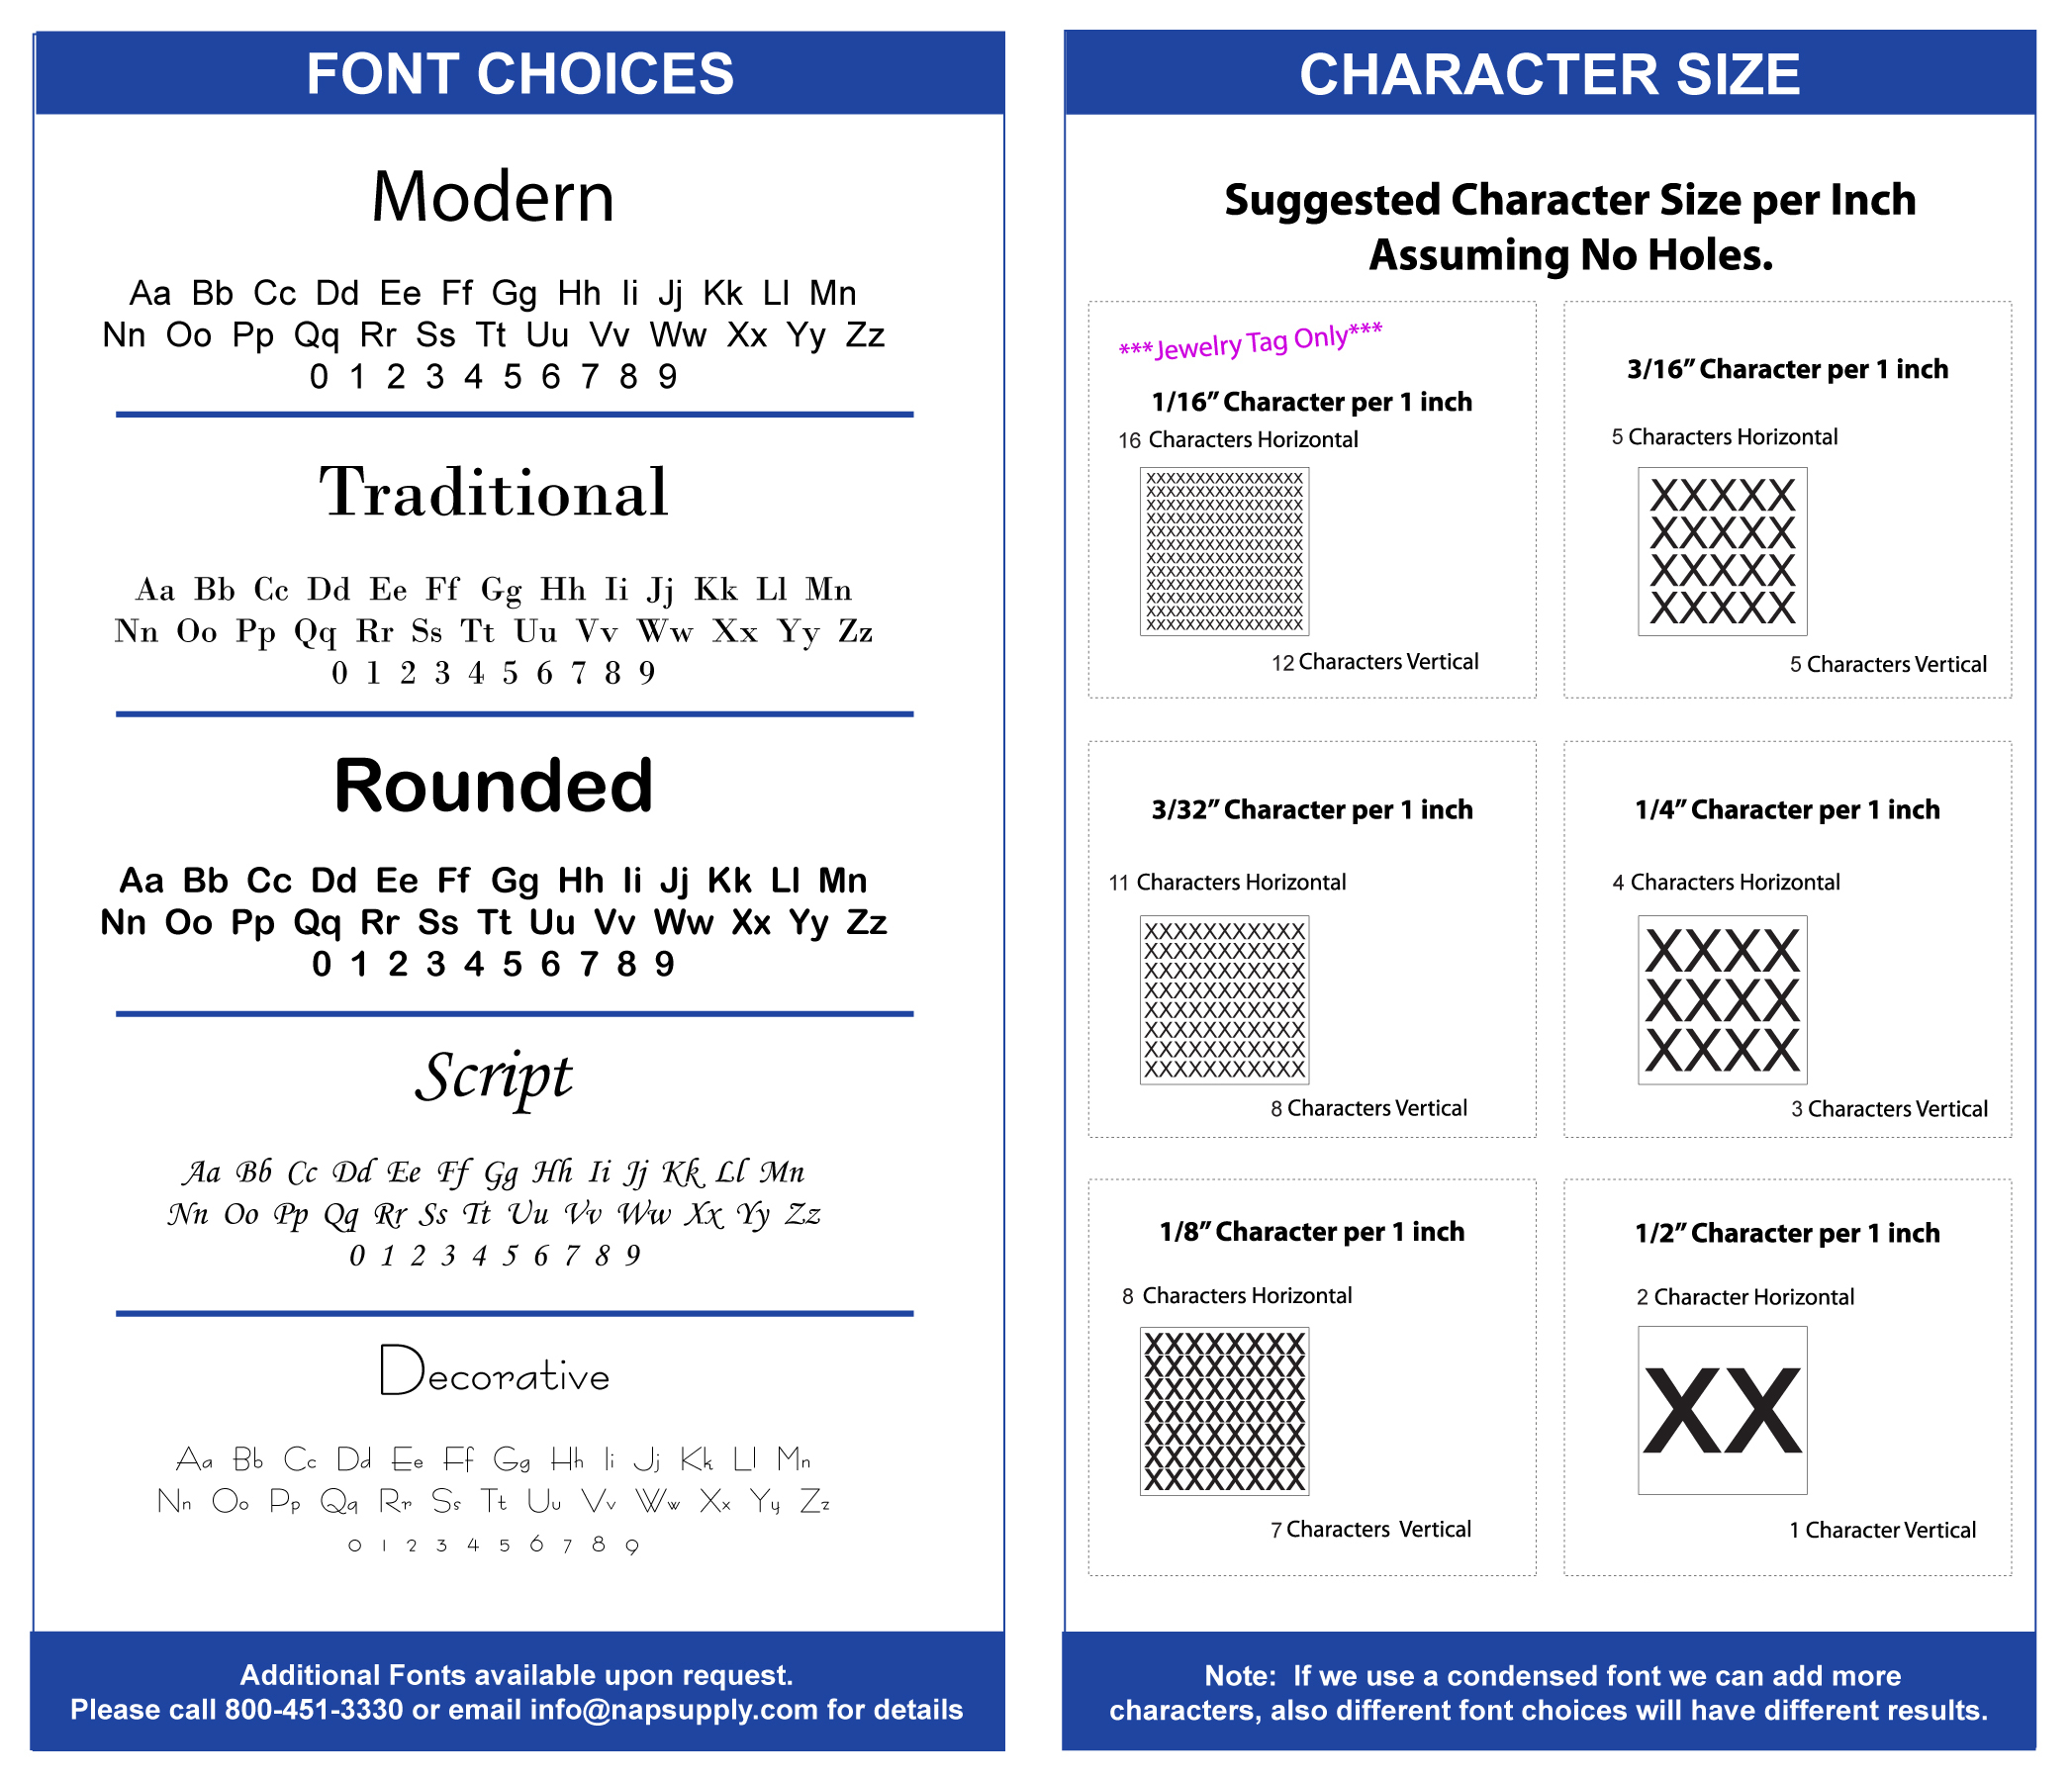 NapTags-Fonts-Character-size.jpg#asset:11613